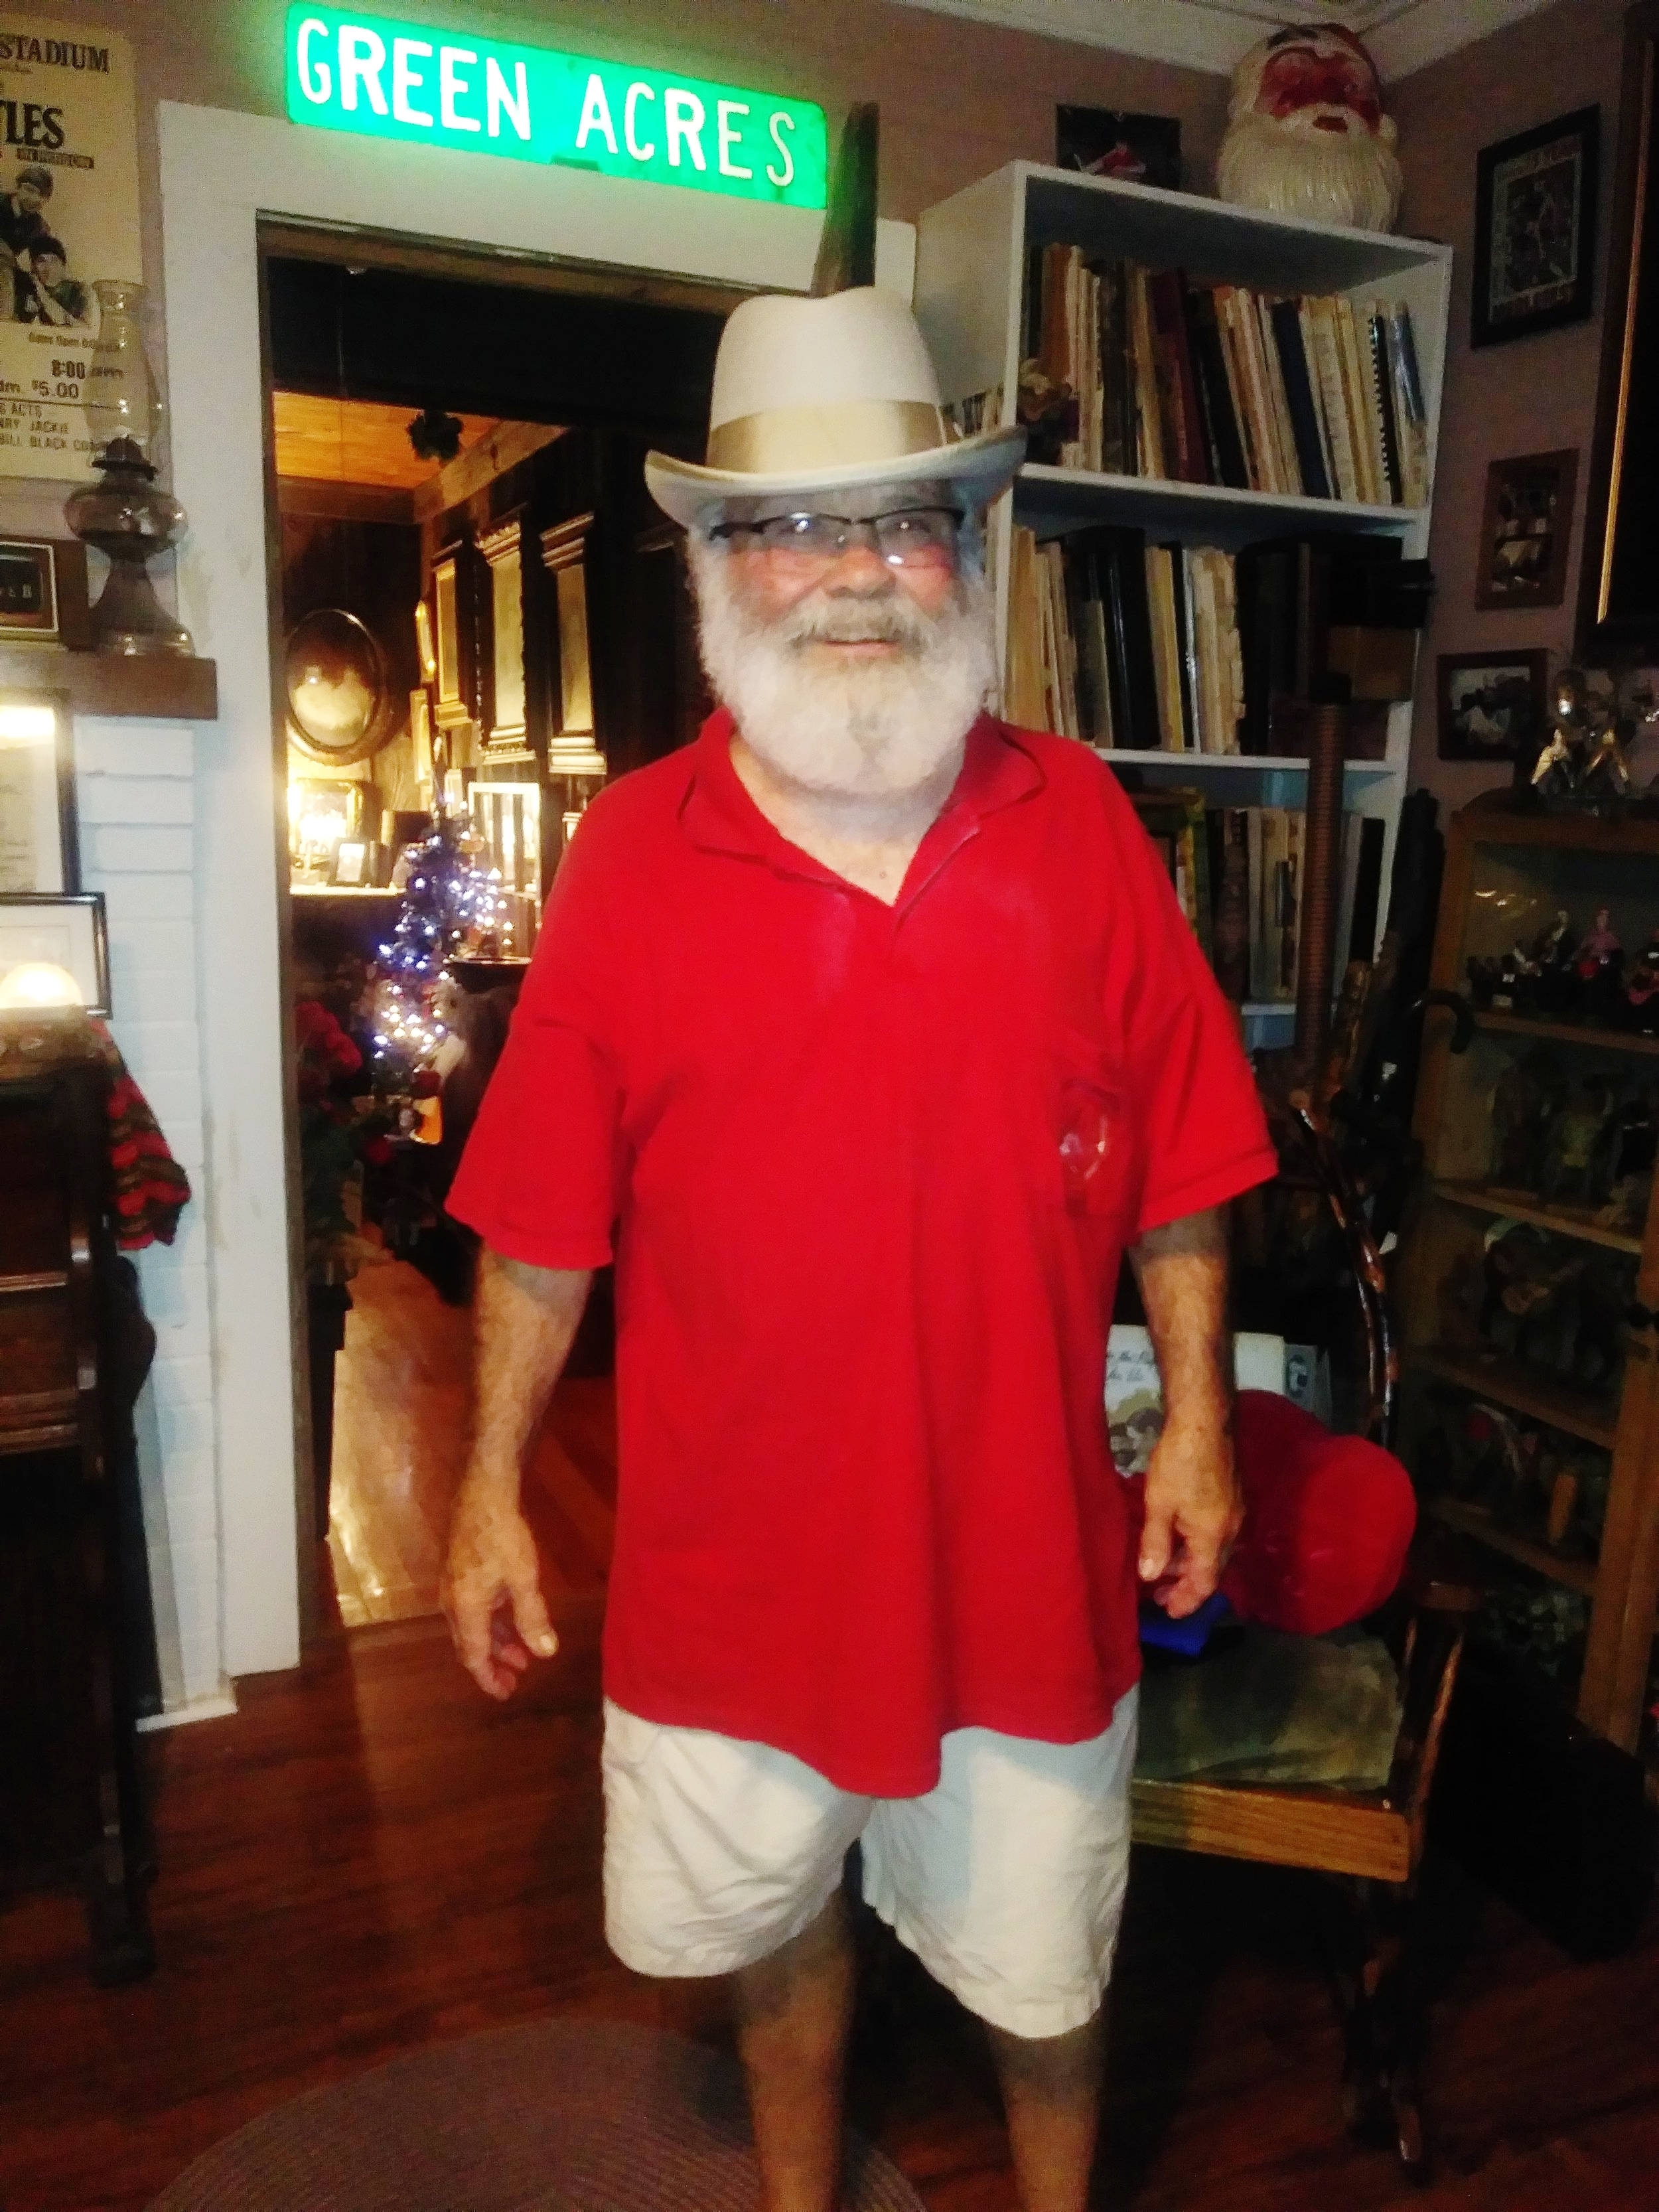 The Little King, Steve Metcalf, at his home in Forest City, NC, after being interviewed for our podcast on Acoustic Syndicate. He's looking dapper in the hat that Jerry Douglas gave him at this year's MerleFest.